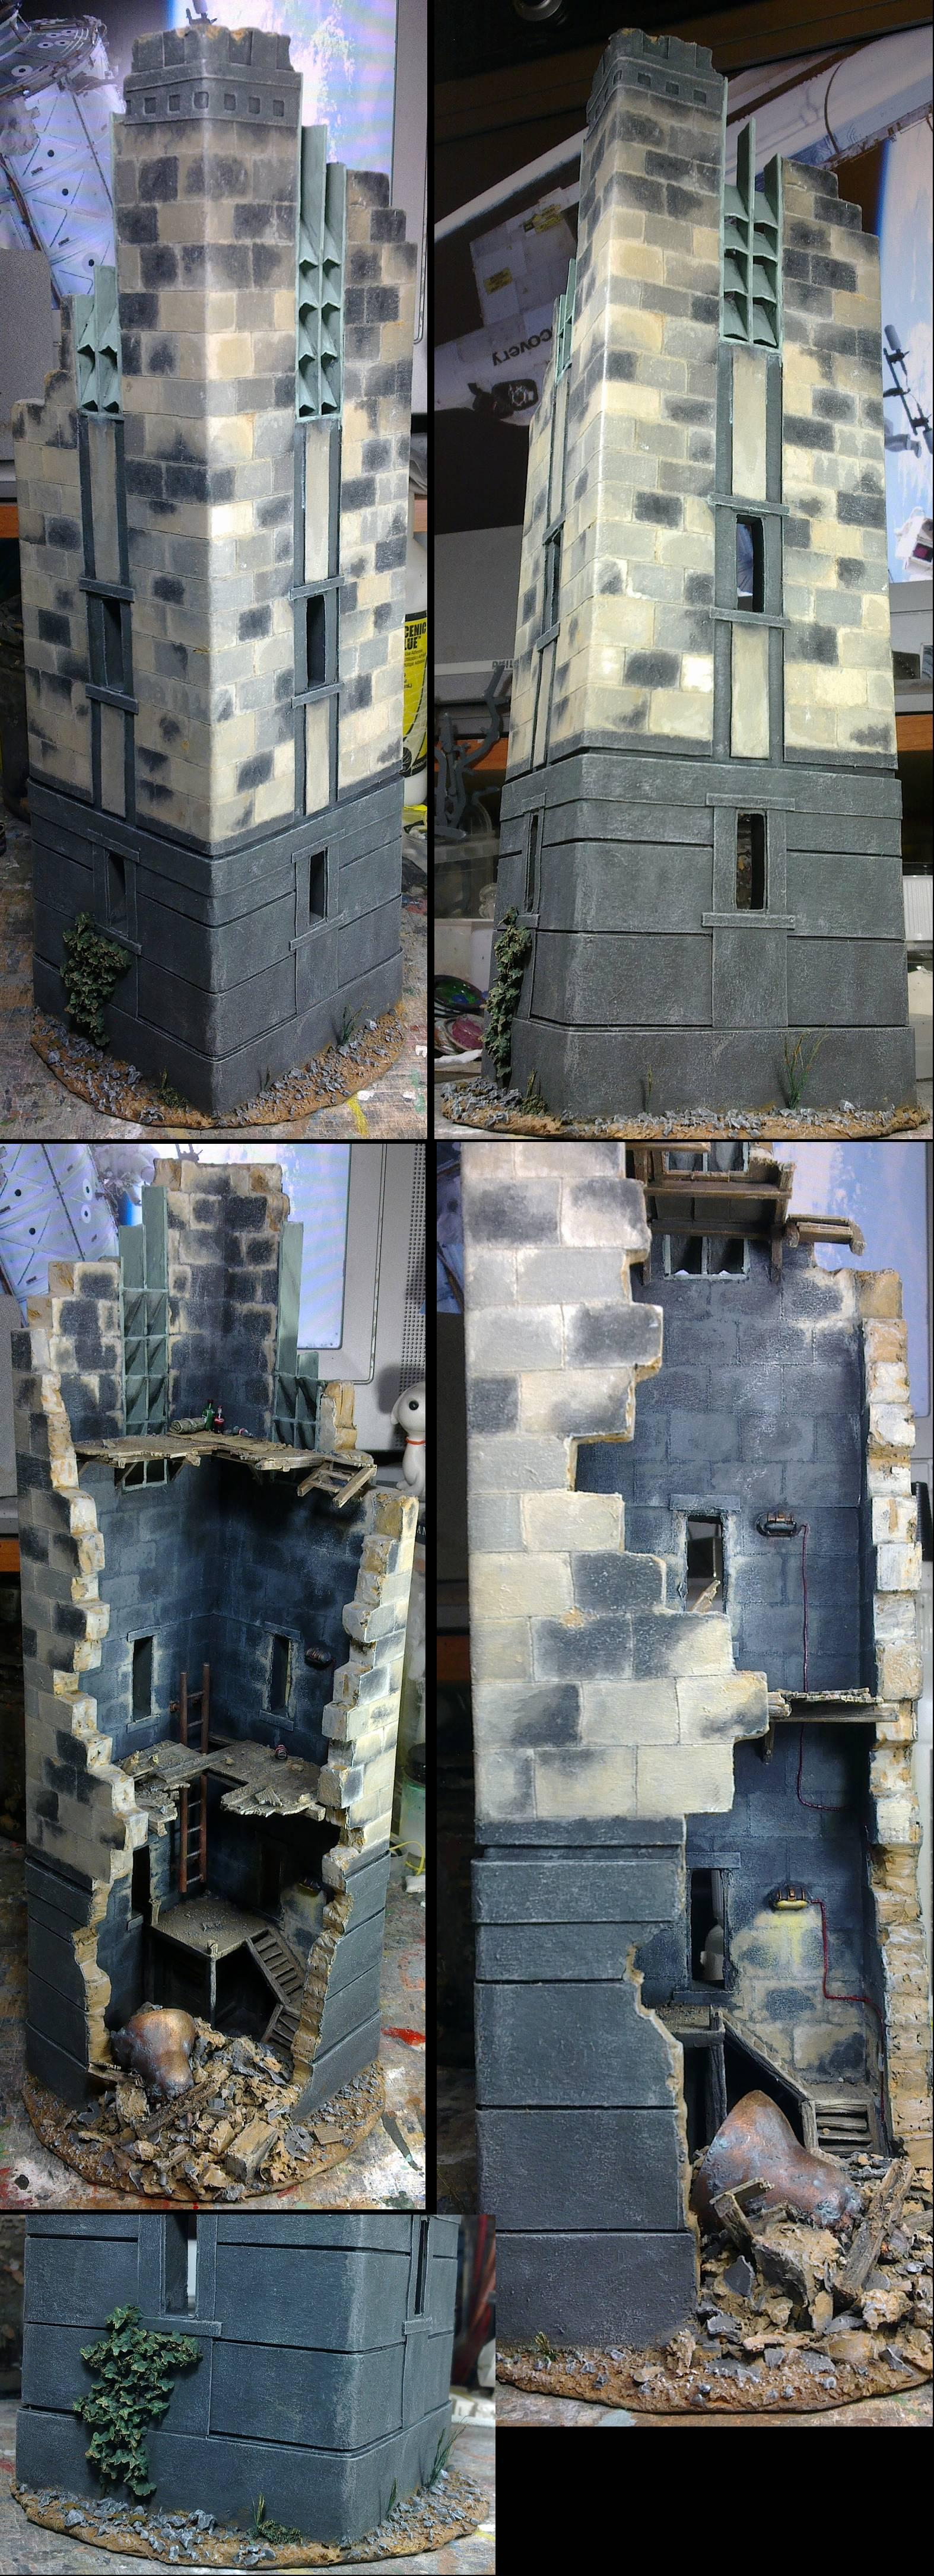 Graven's tower pip 9